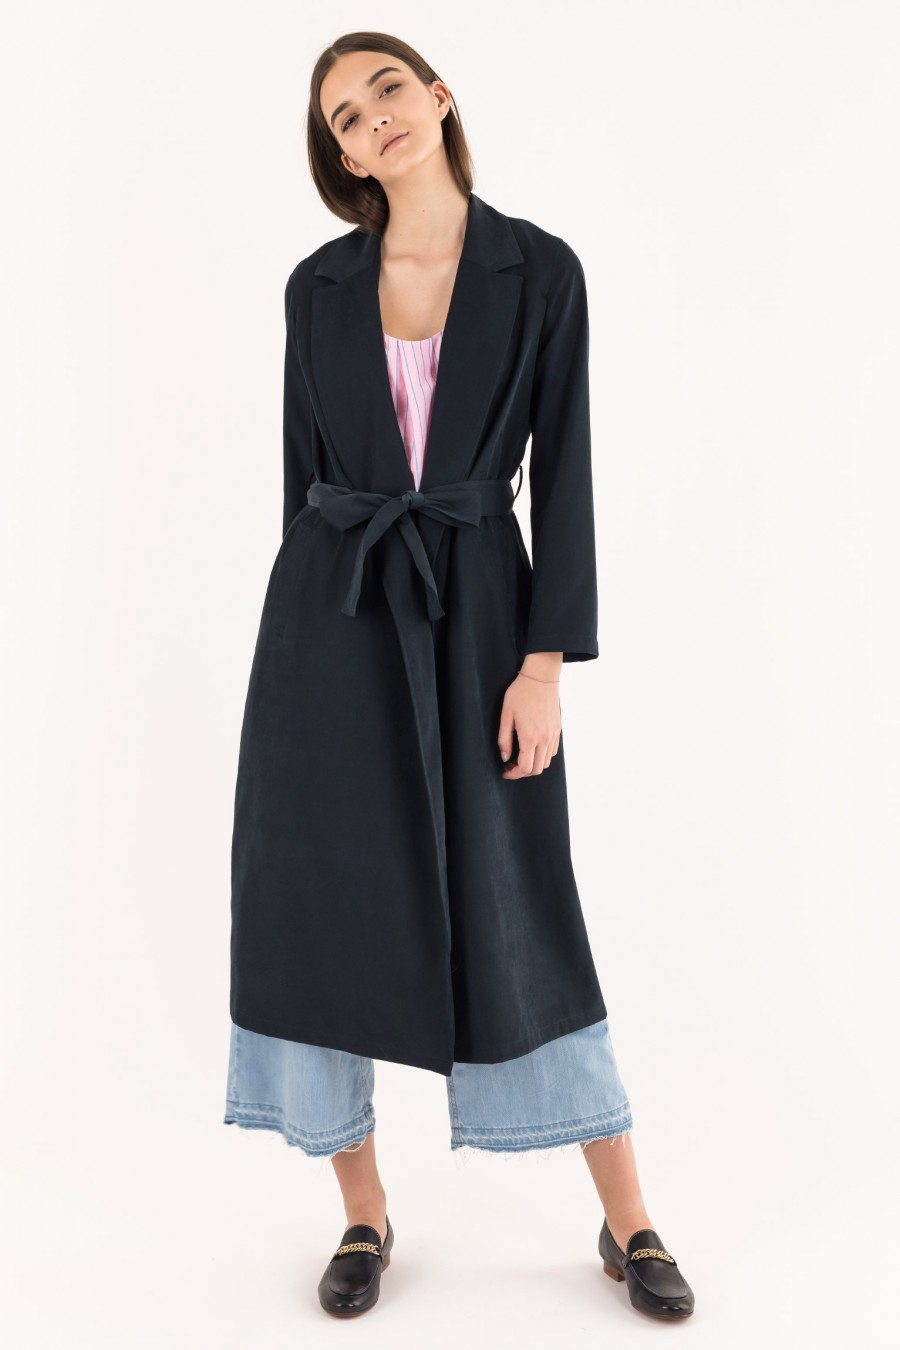 Elegant long overcoat